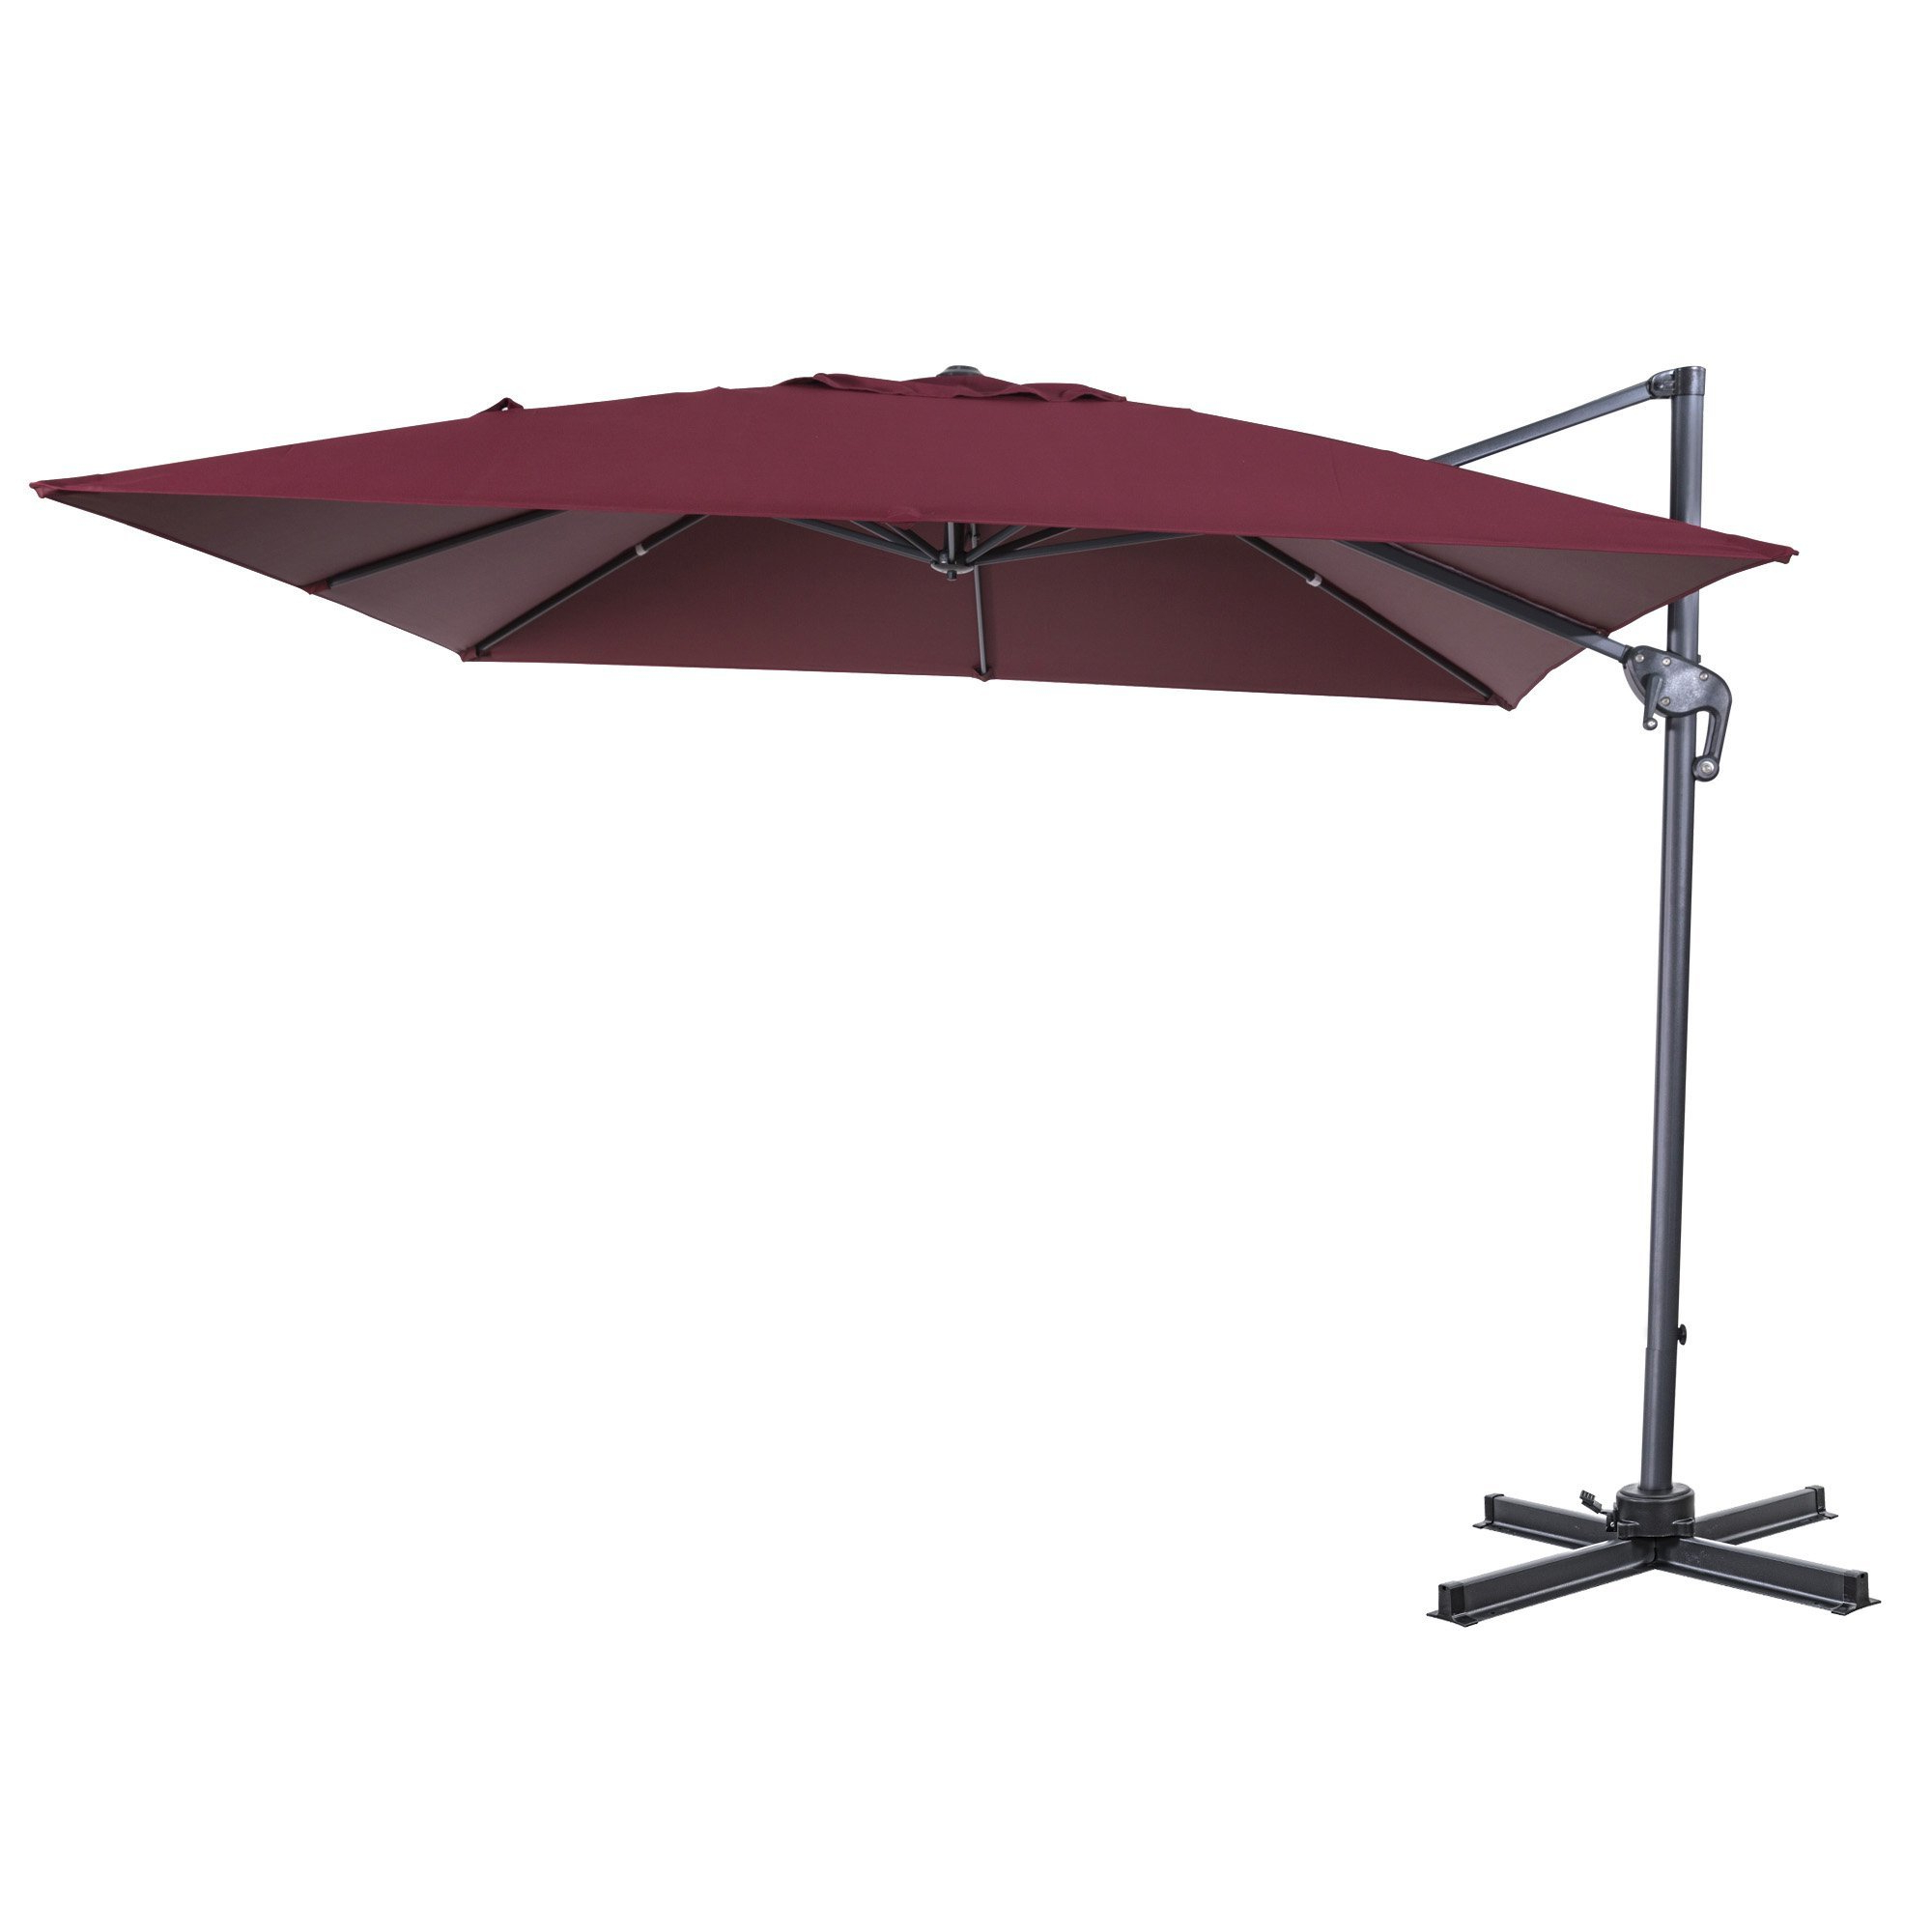 Elmhur Patio Offset 10' Cantilever Umbrella With 2019 Cockermouth Rotating Cantilever Umbrellas (View 11 of 20)